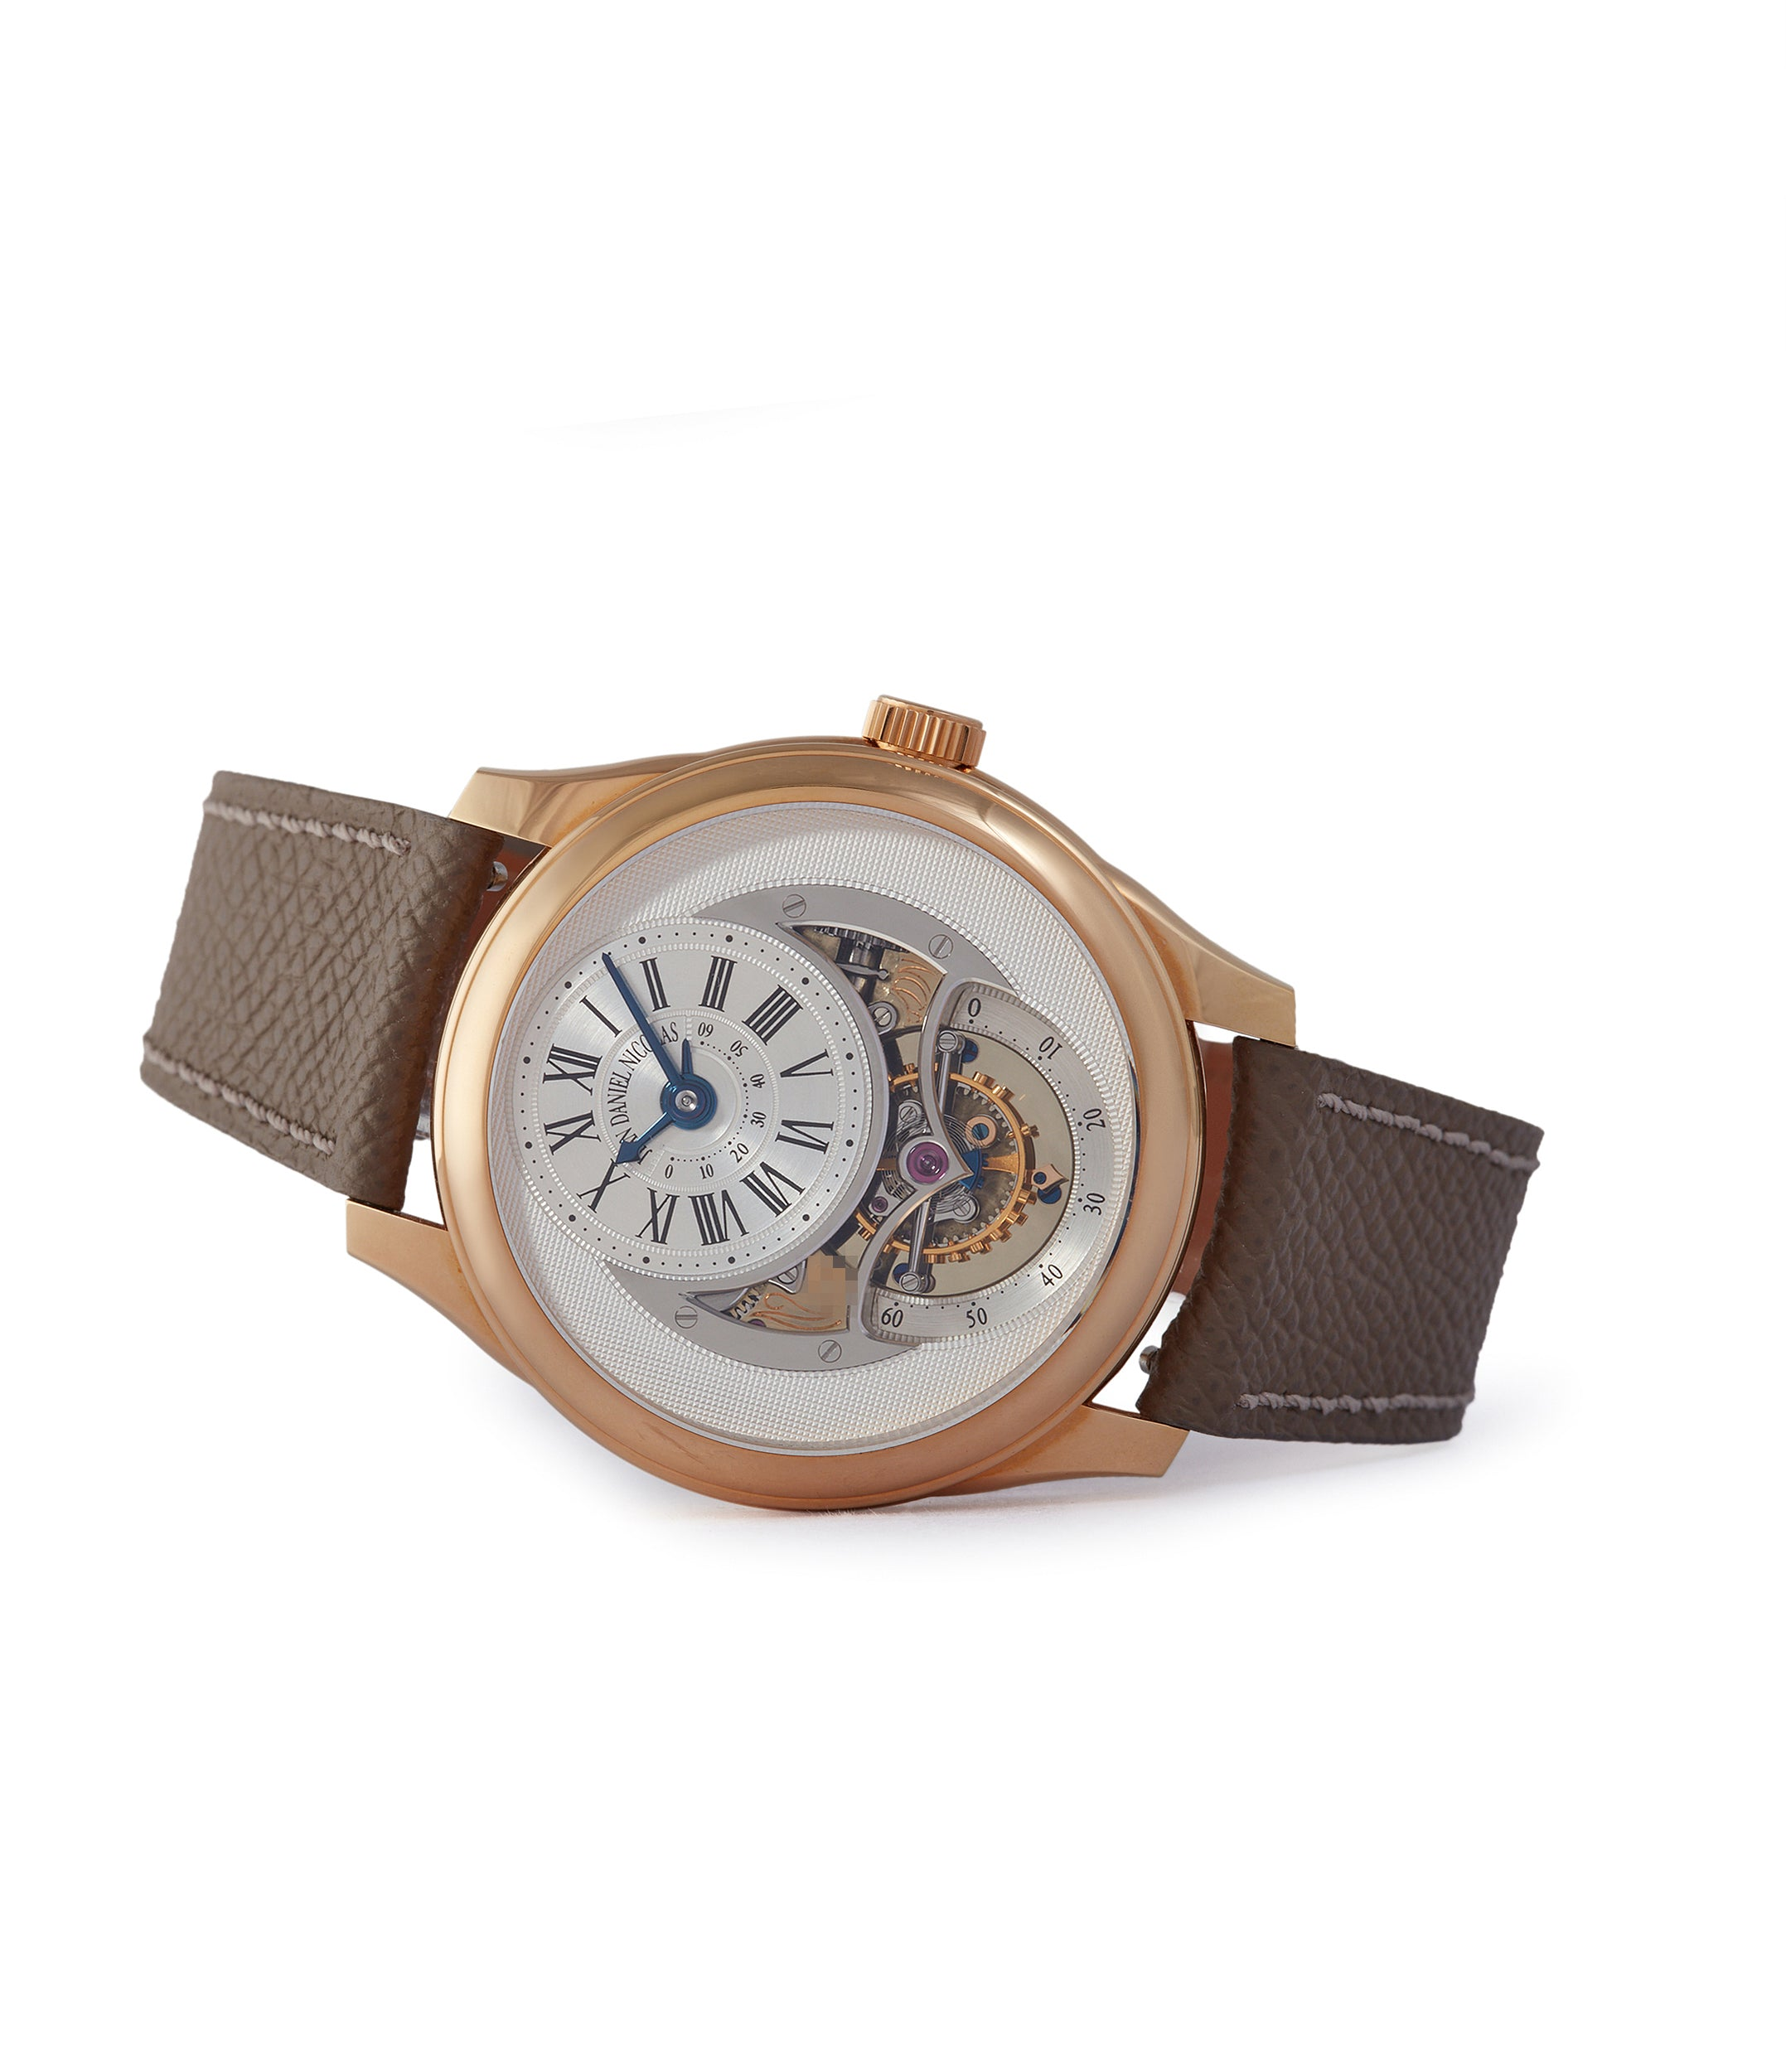 side-shot Jean Daniel Nicolas Two-Minute Tourbillon by independent watchmaker Daniel Roth rose gold pre-owned rare watch for sale online A Collected Man London specialist of rare watches